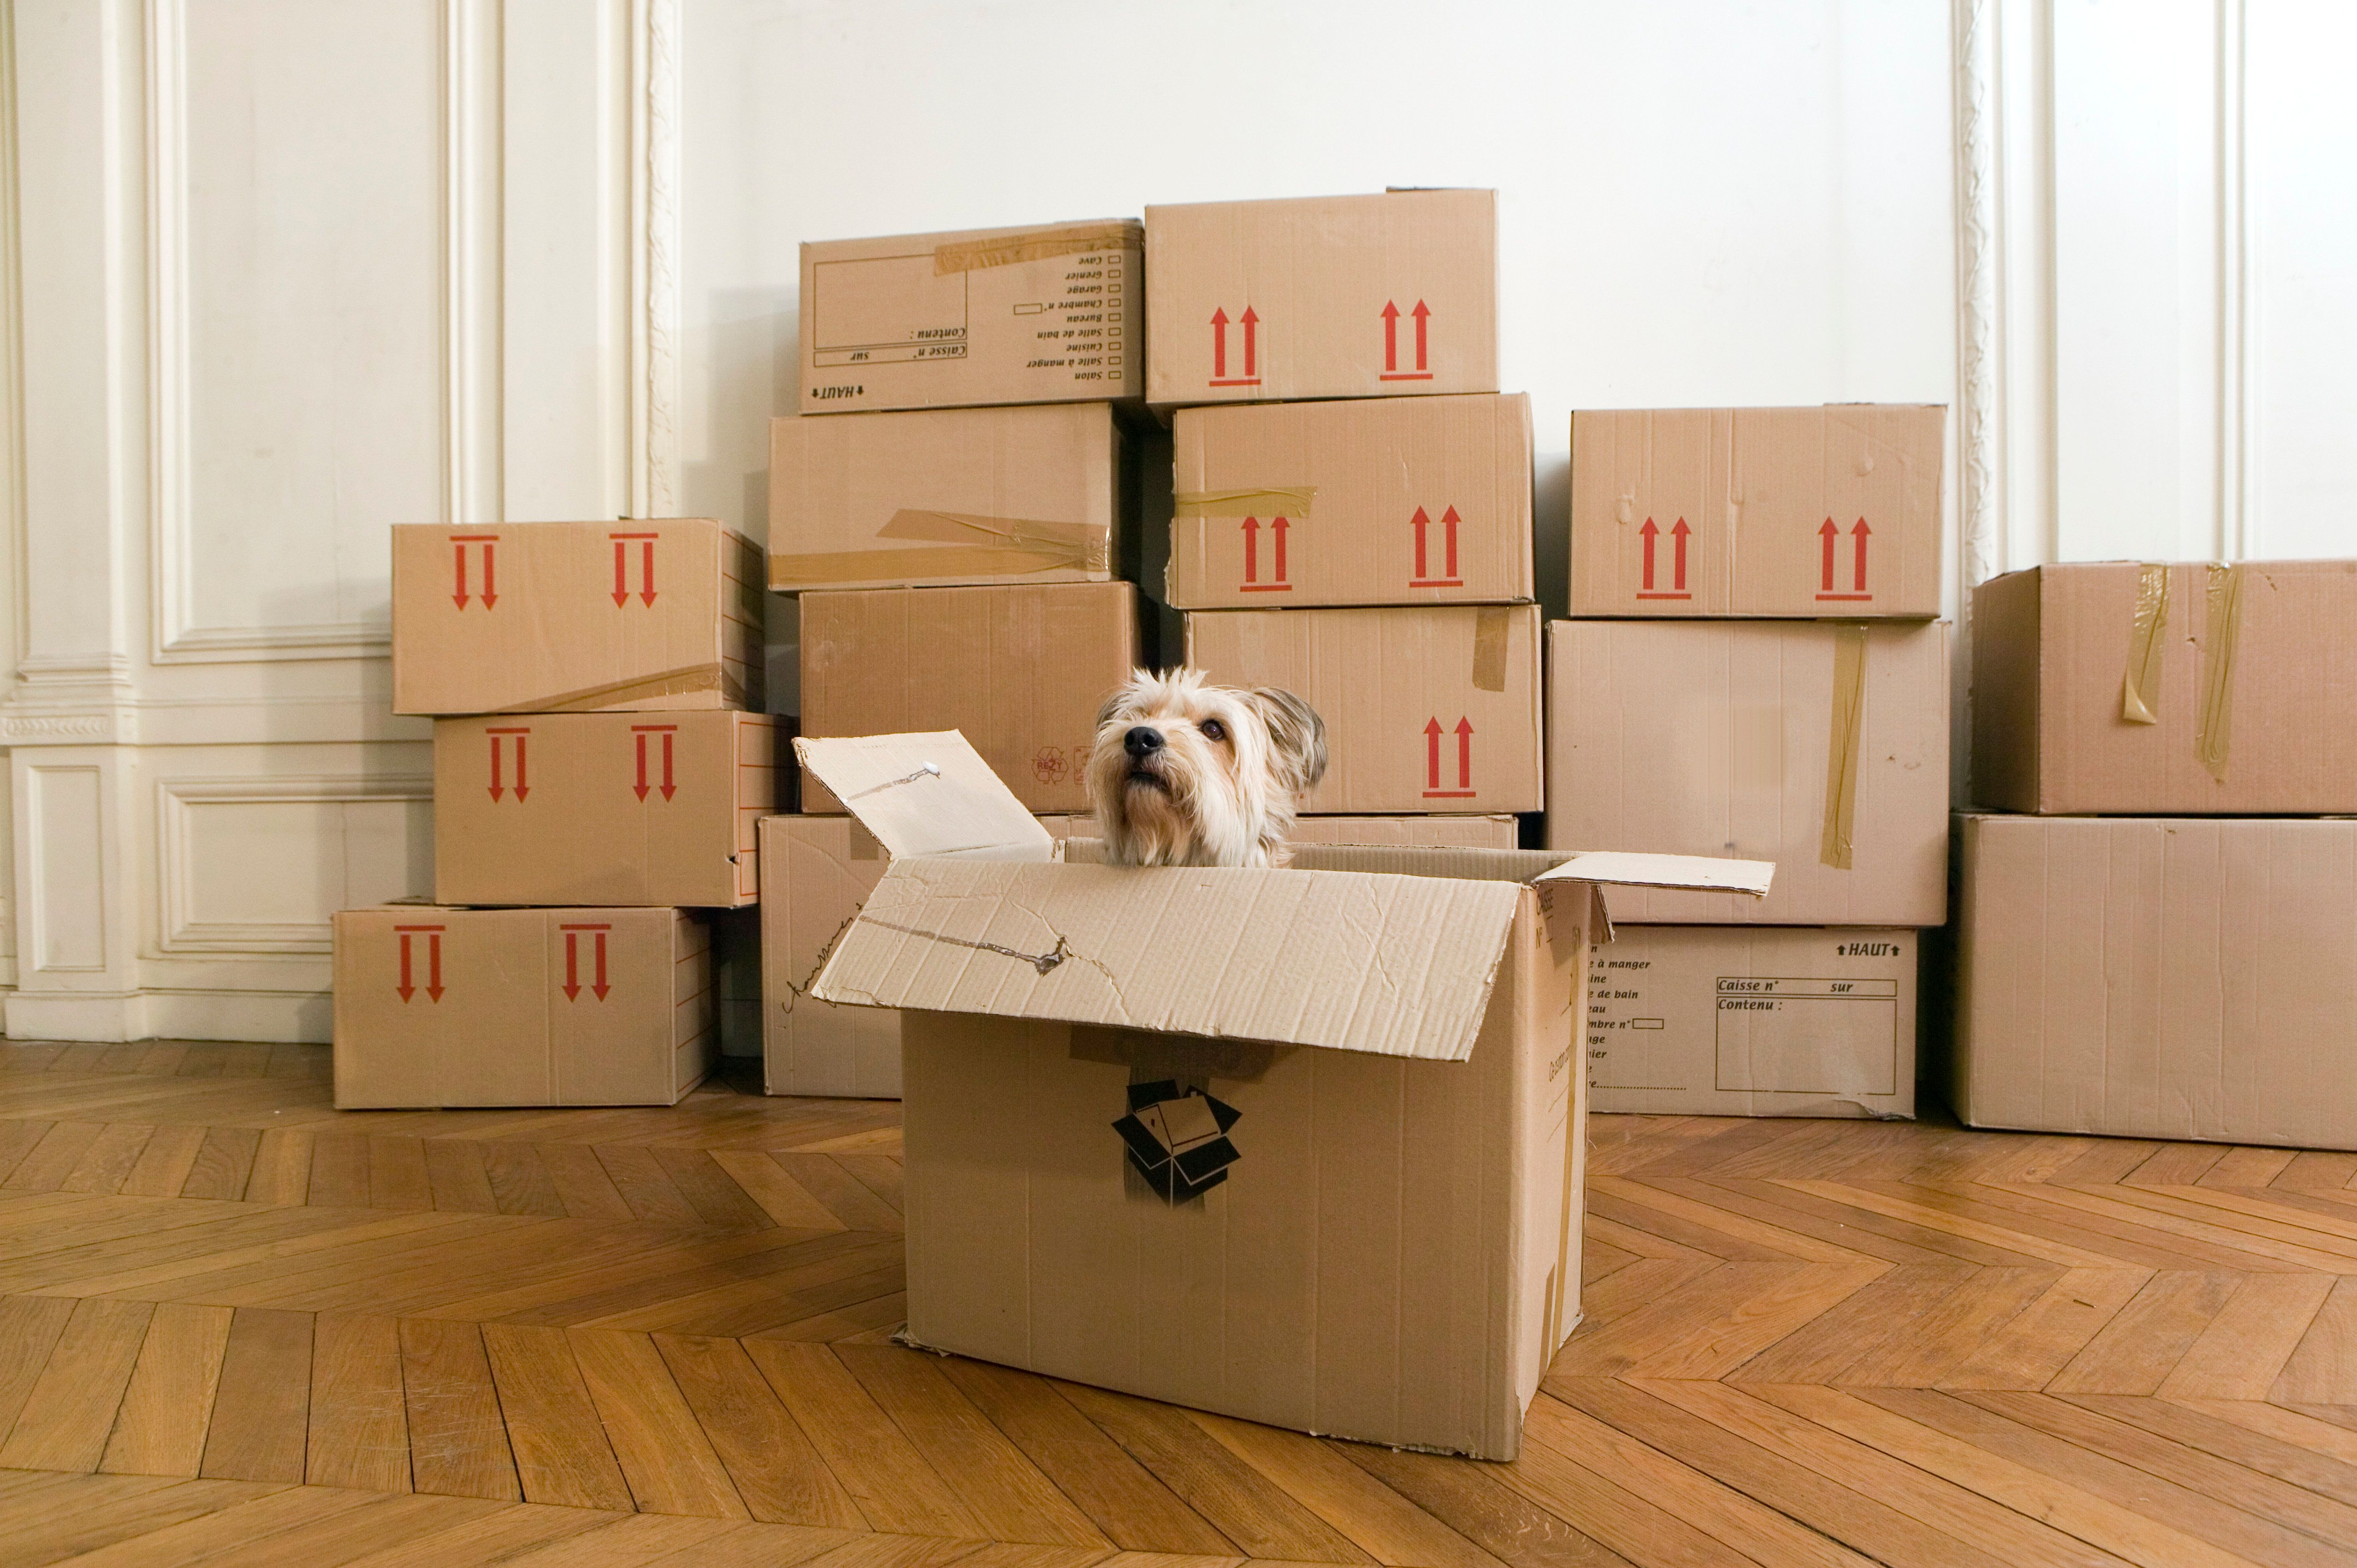 Beau We Found A Cheap Way To Move Your Stuff Across The Country | HuffPost Life